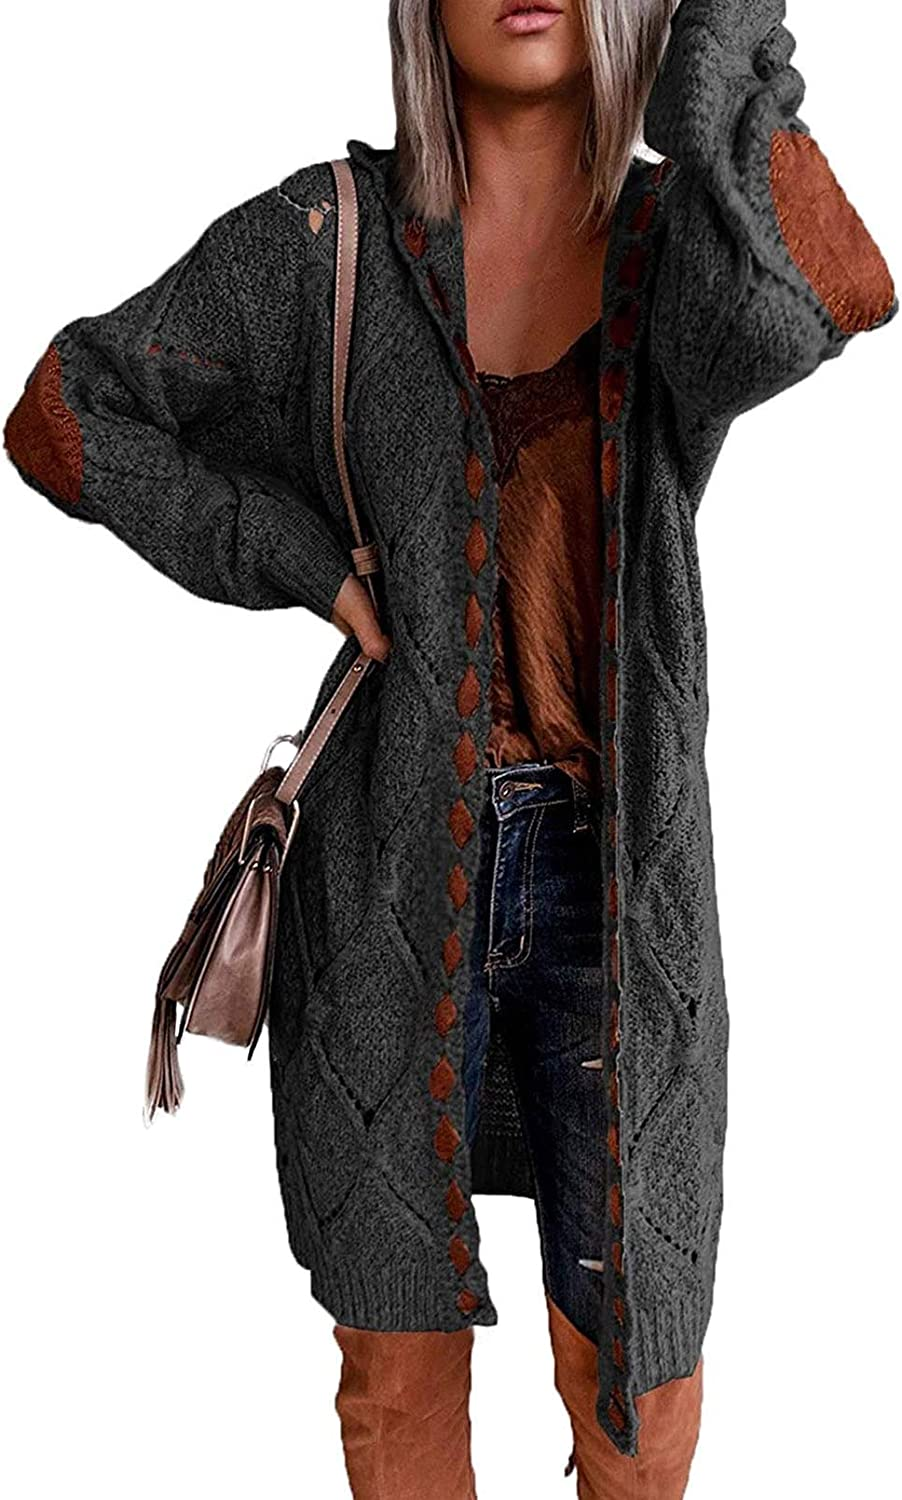 TEWWEY Women's Casual Cable Knitted Hooded Cardigan Open Front Sweater Long Sleeve Chunky Outwear Coat